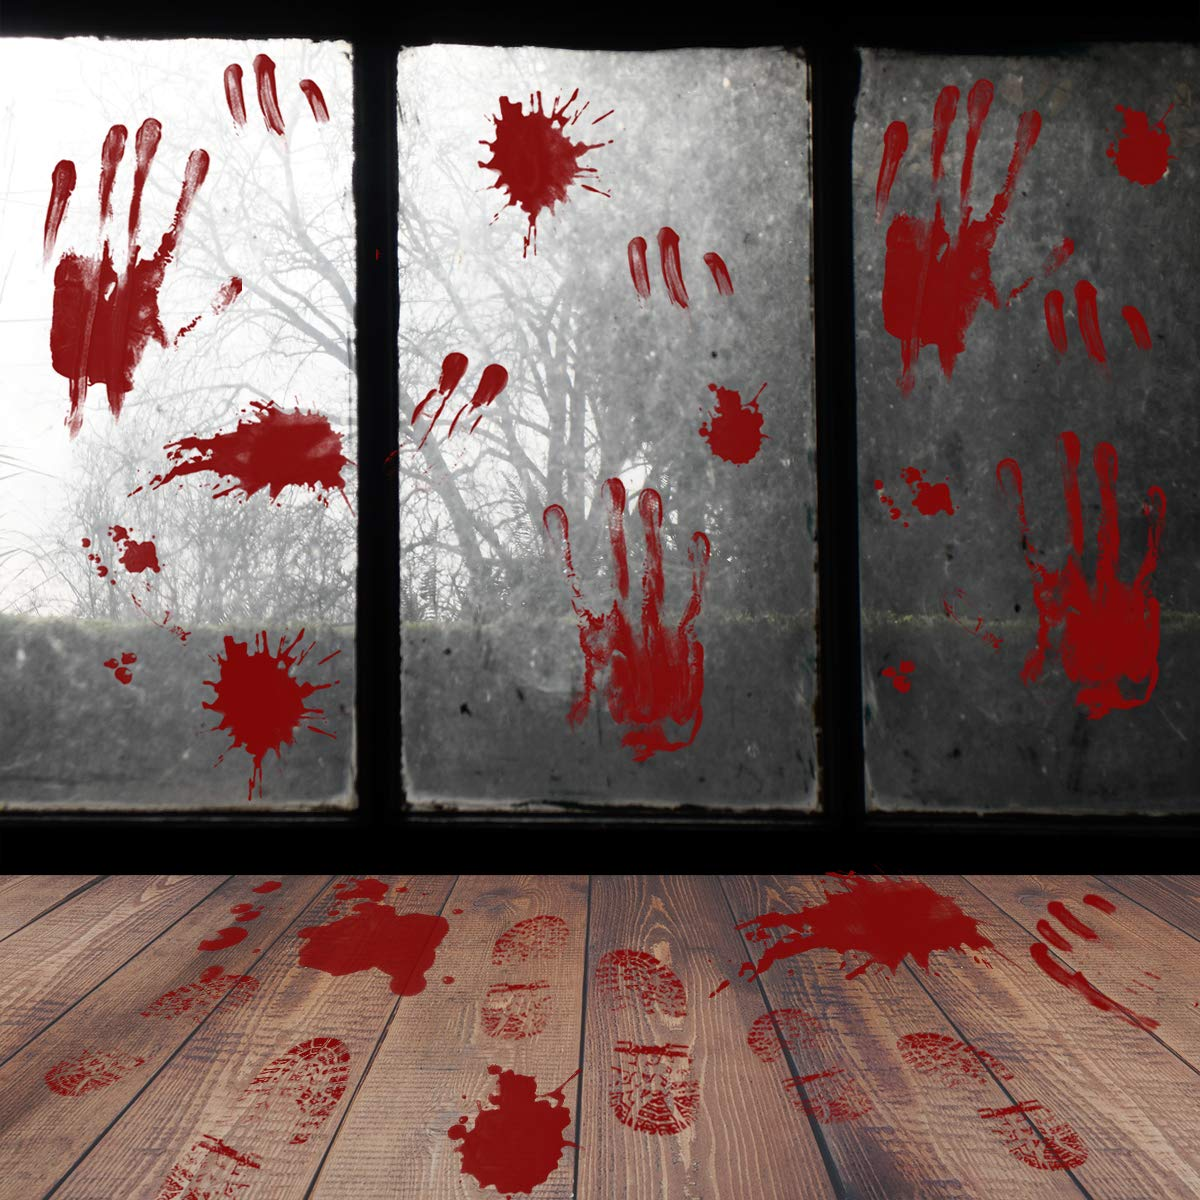 Halloween Bloody Window Wall Floor Clings Decal Sticker - 48 PCS Footprint Handprint Stickers Supplies for Vampire Zombie Party Haunted House Bathroom Window Decorations Shine-Home